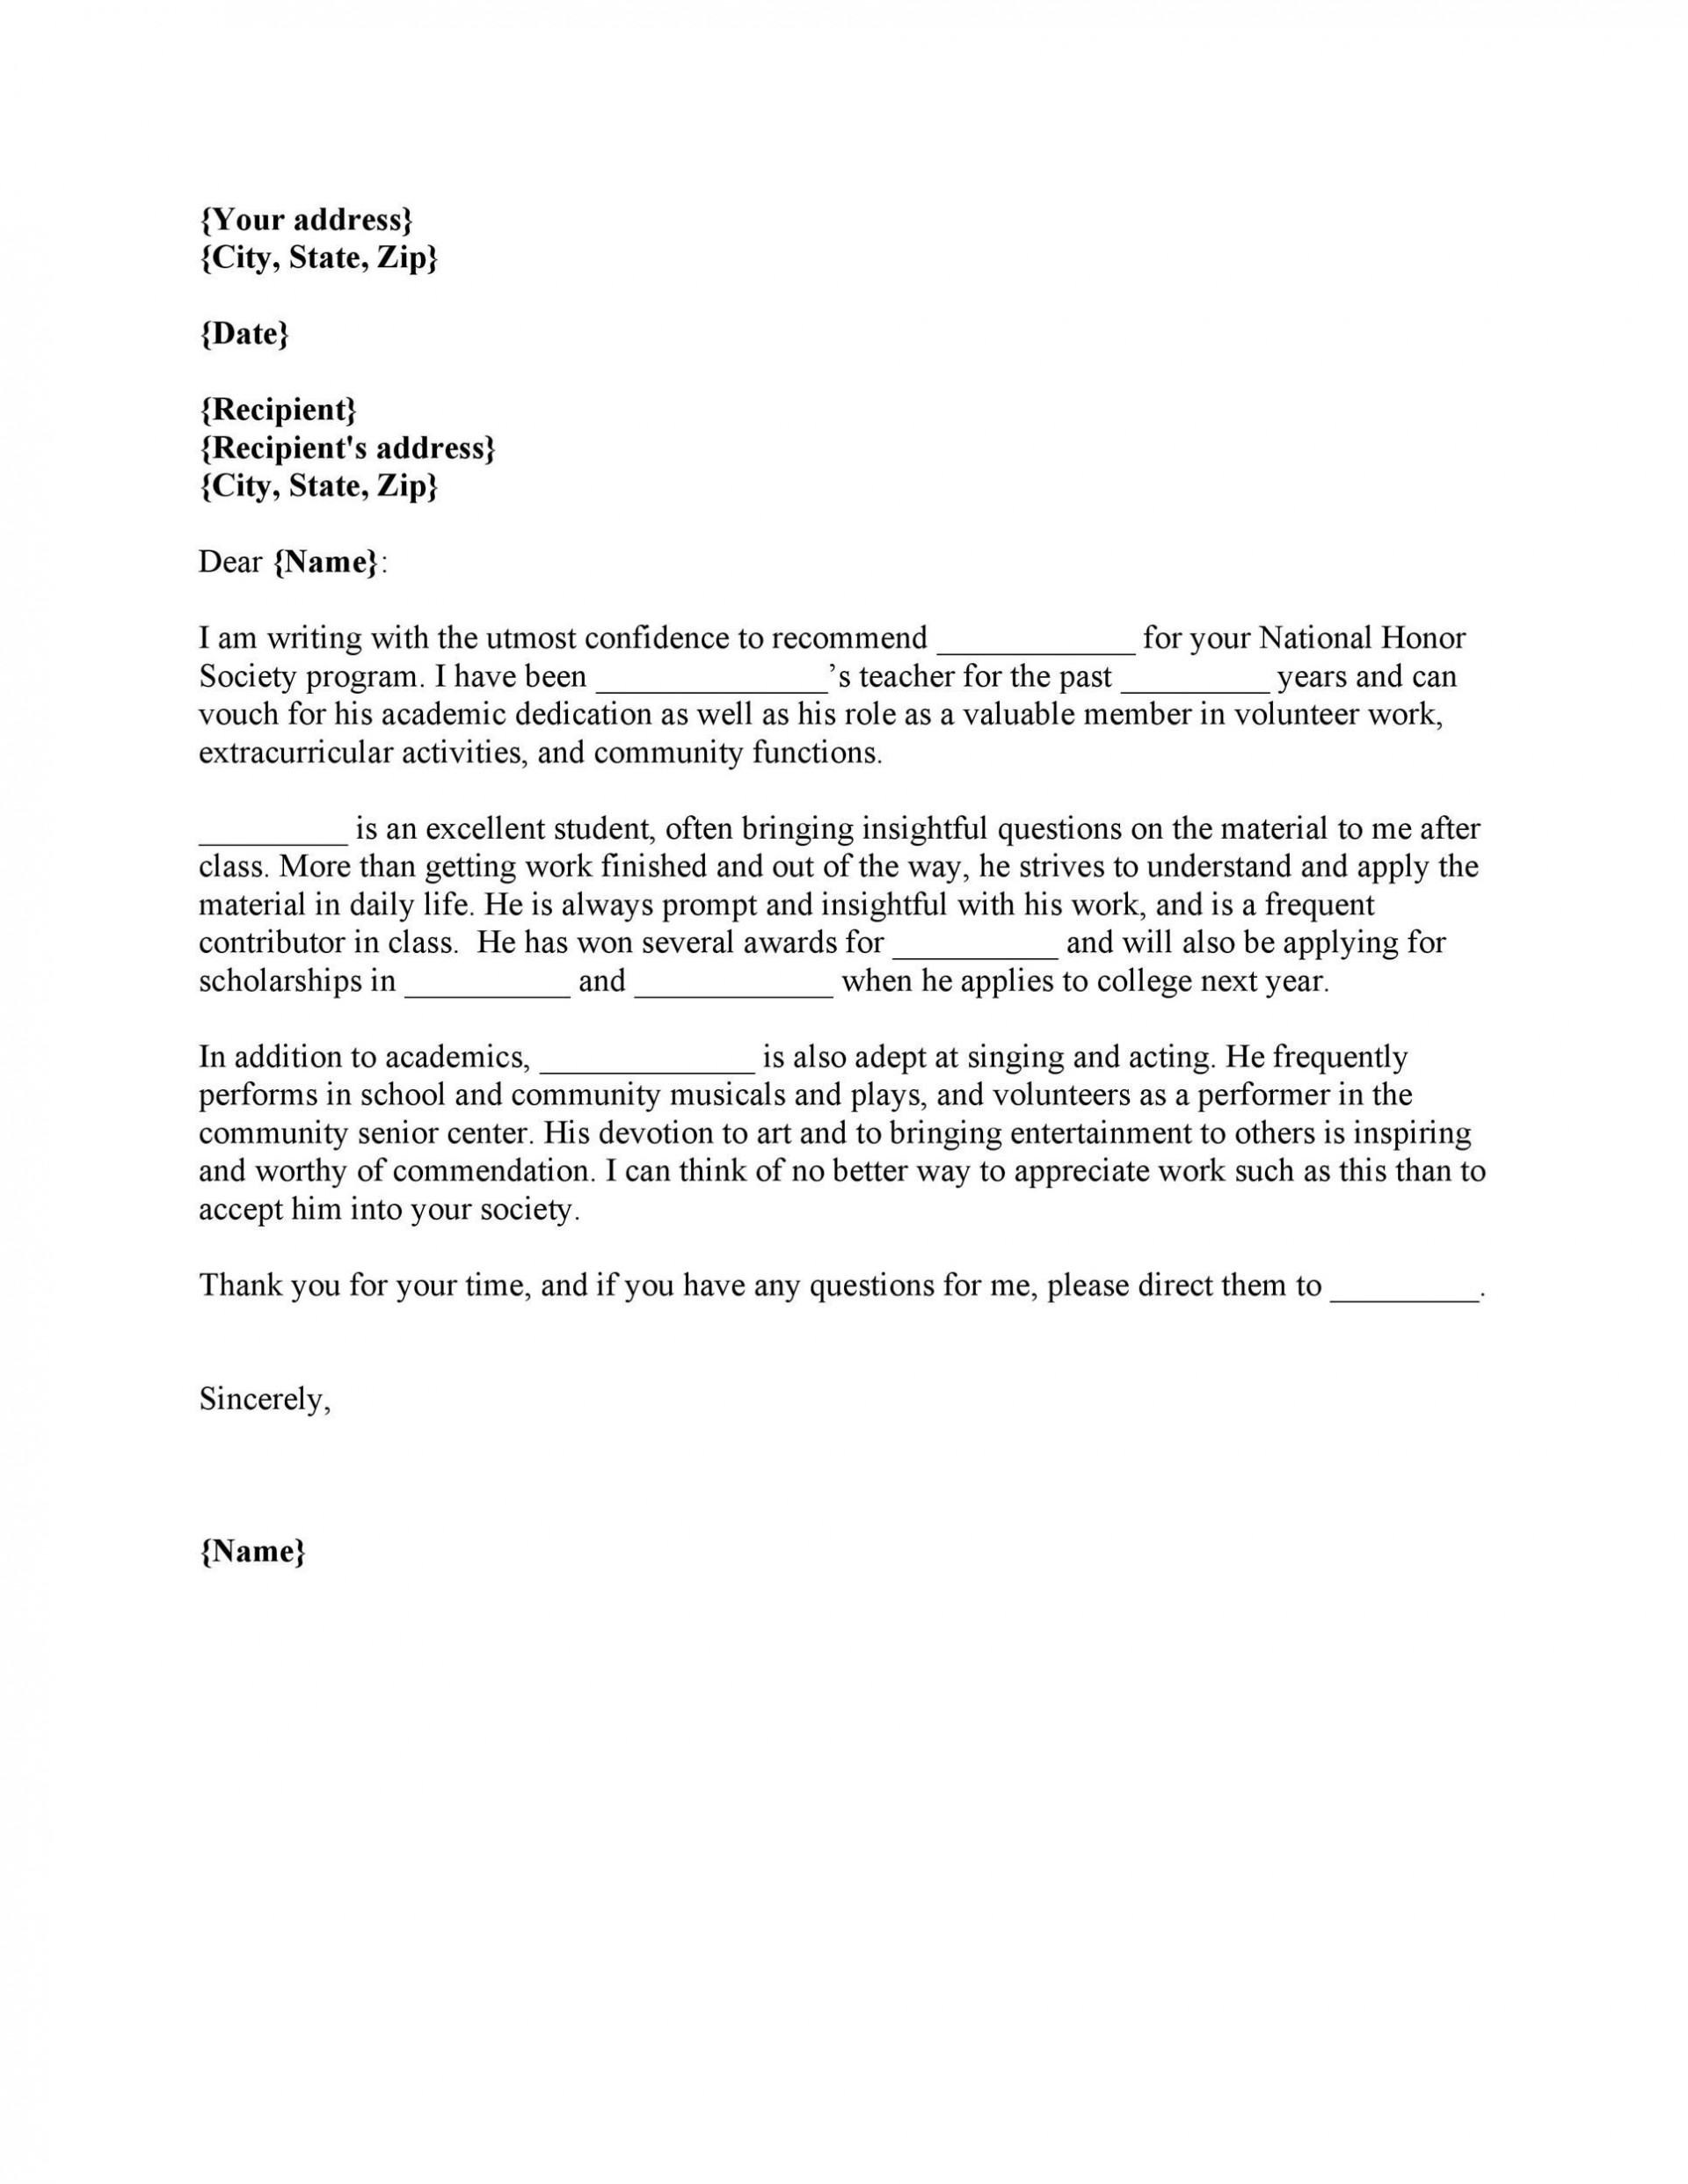 004 Singular Free Reference Letter Template Highest Clarity  Personal Character For Employee Employment1920